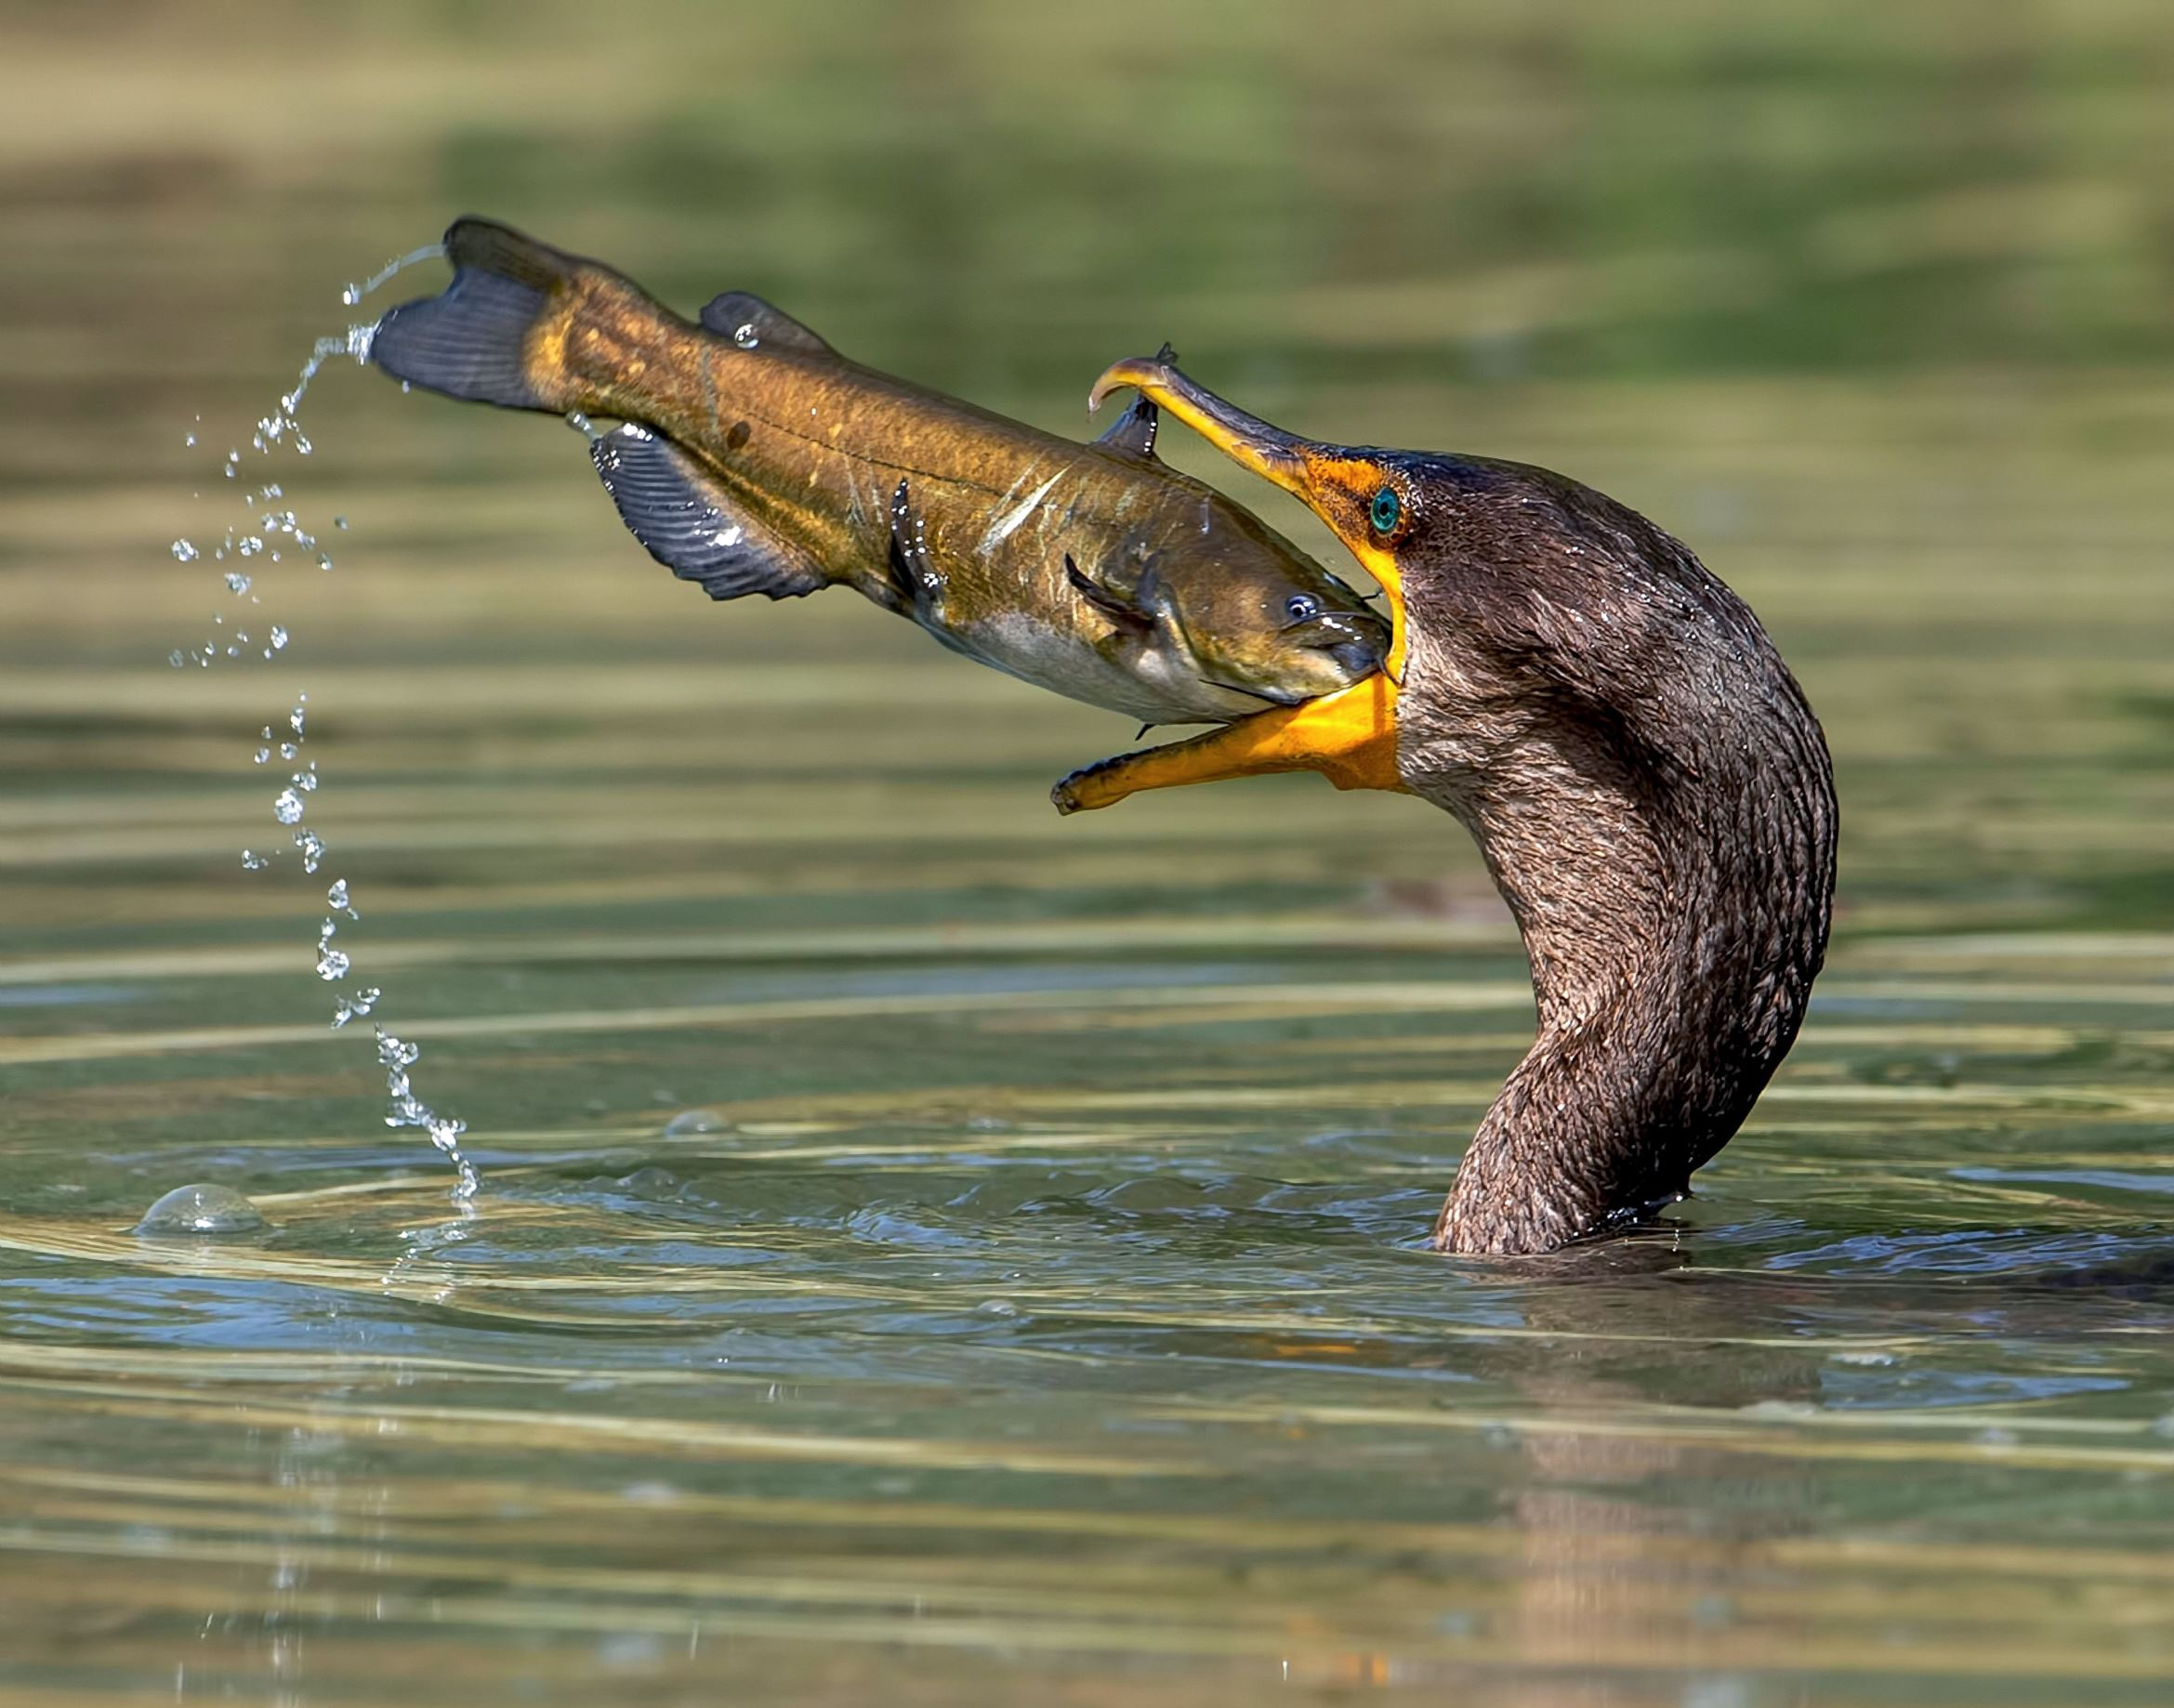 Слайд 25 из 67: Cormorant eats a fish in Fullerton Arboretum, California, USA - May 2016 Cormorant catching and eating the catfish